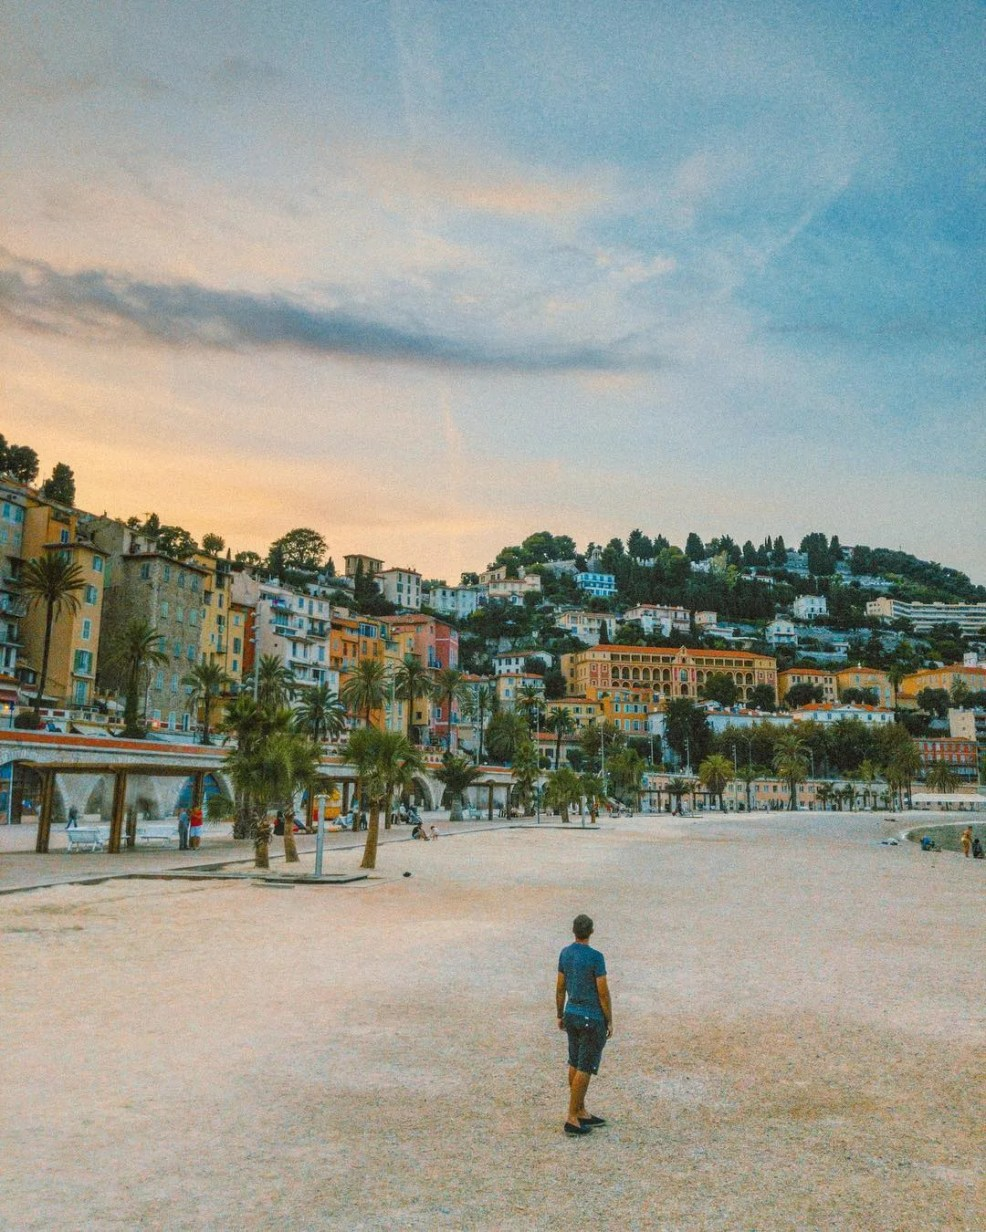 Instagrammable places in France, Menton